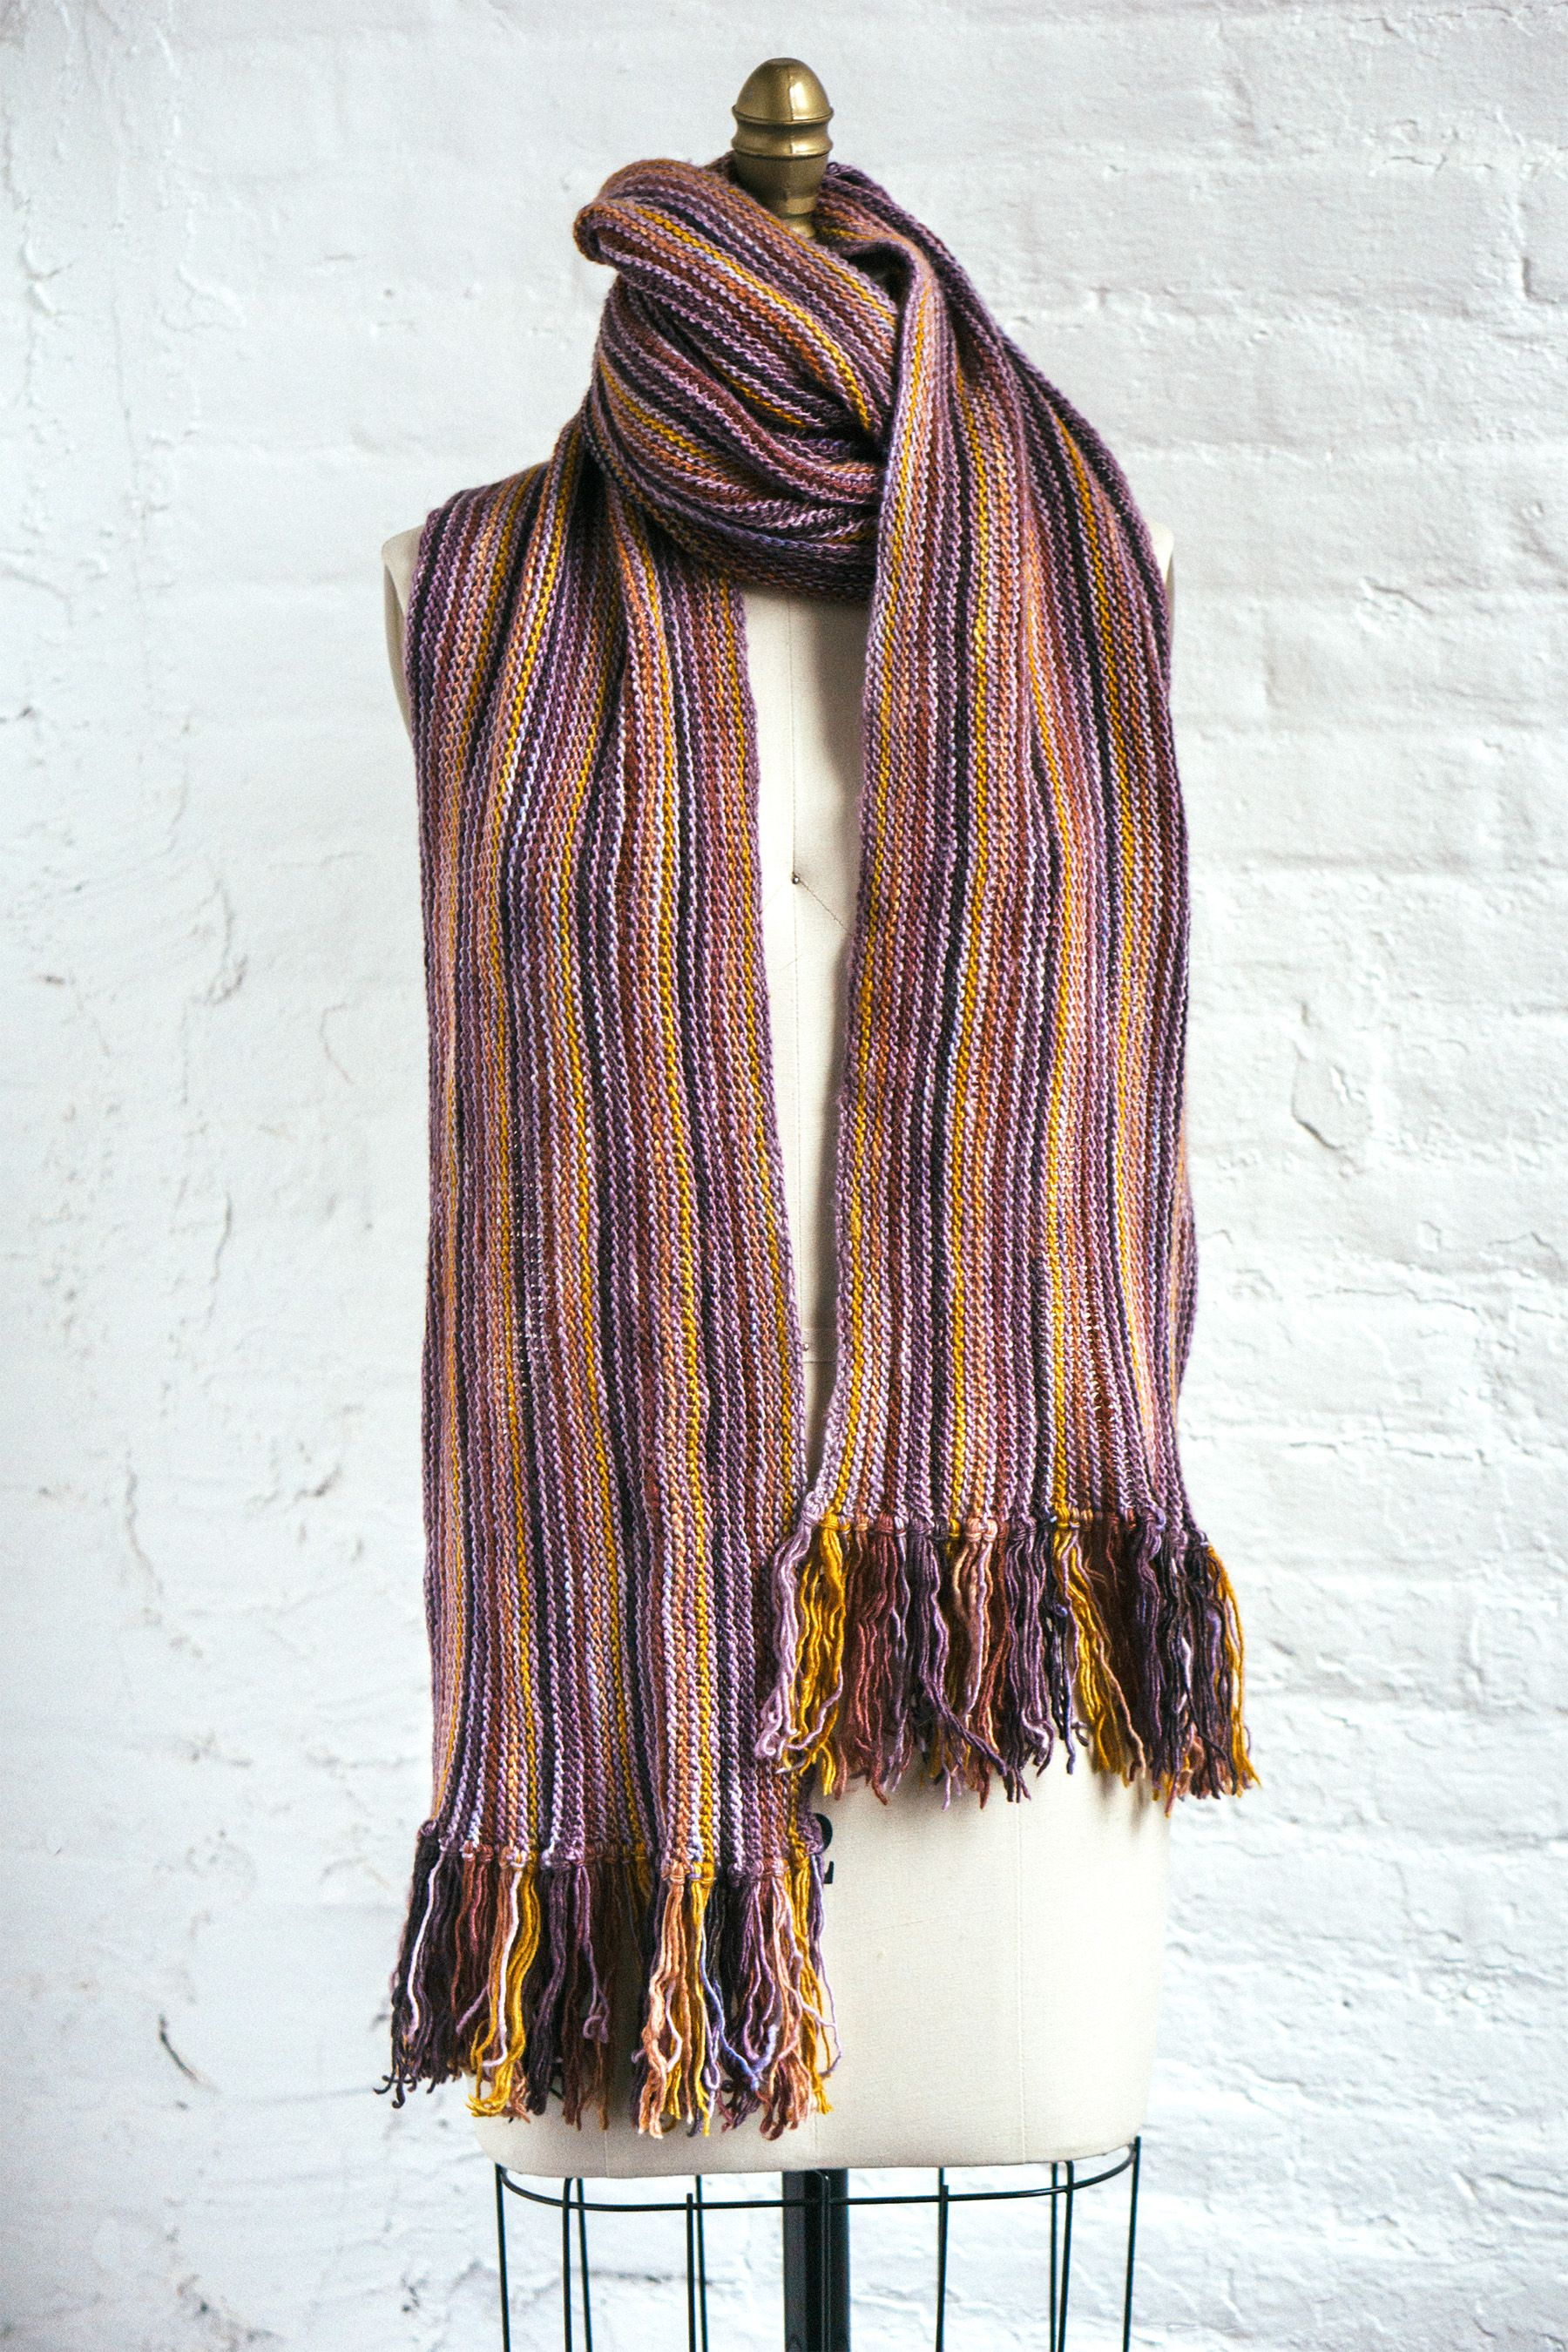 Sencilla (F122) (With images) | Easy scarf knitting ...